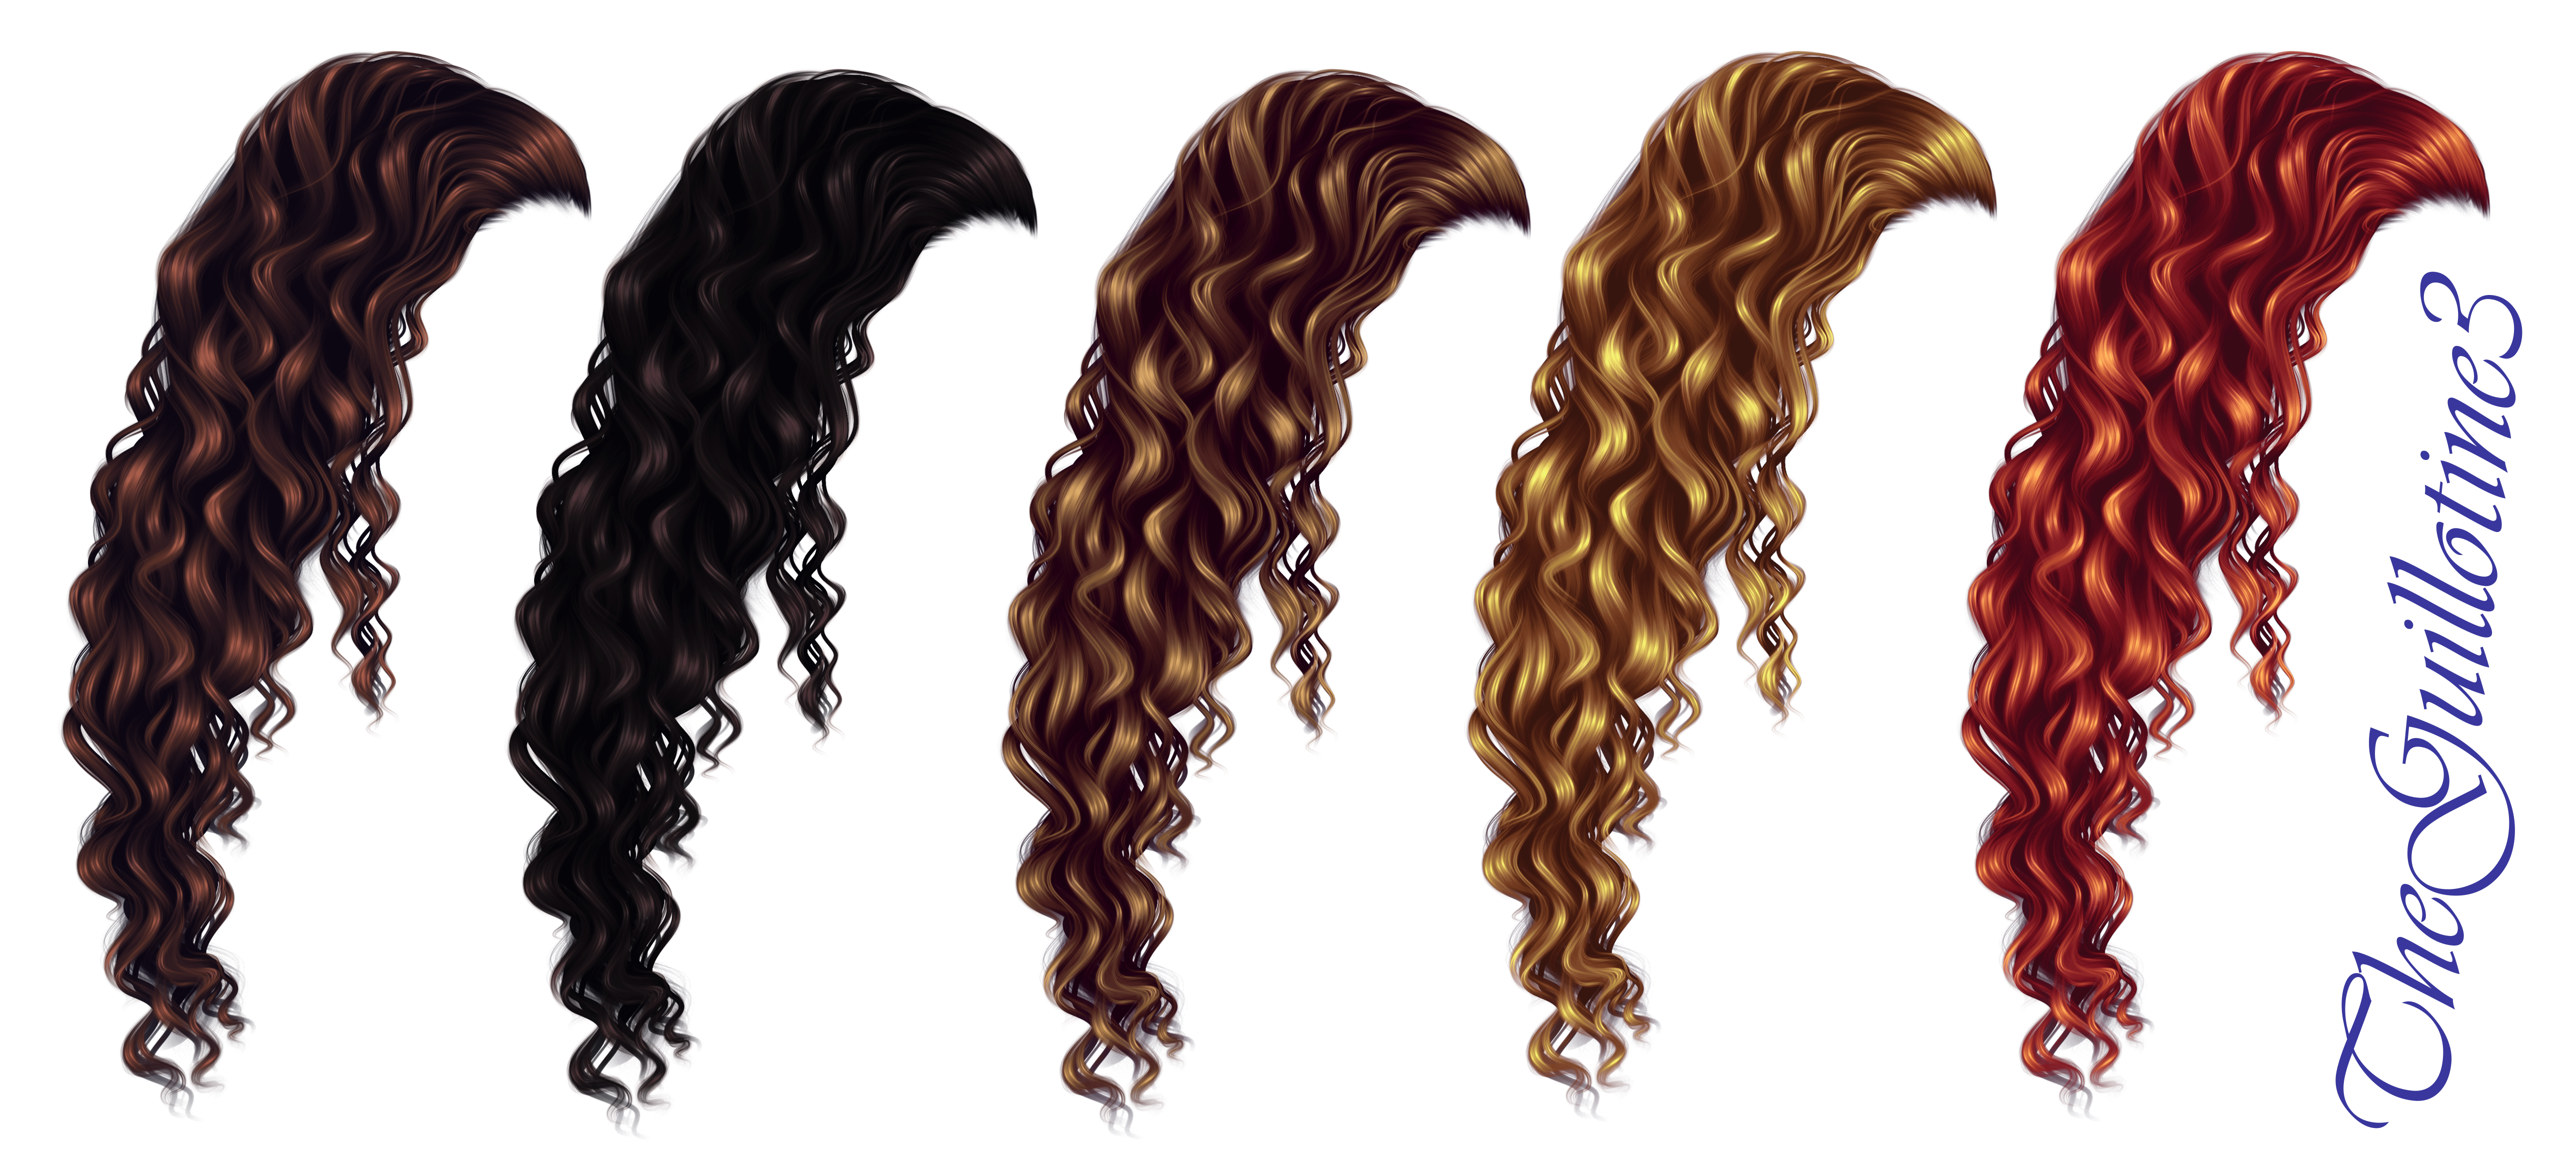 Curly Hair by TheGuillotine3 on DeviantArt.